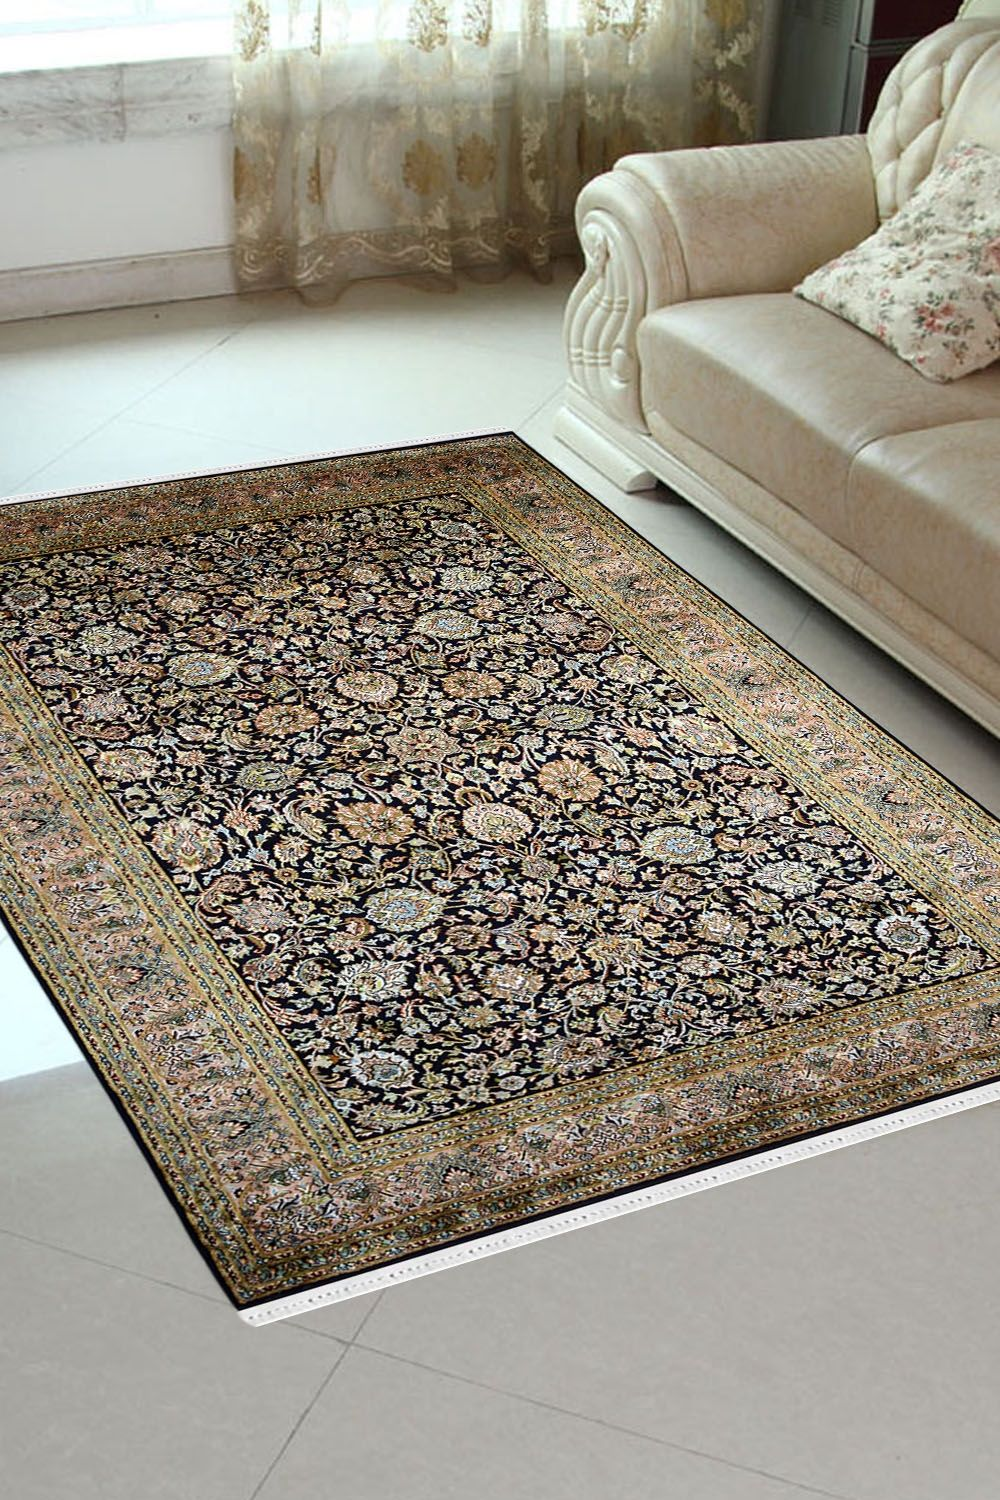 Purchase This Neel All Over Kashan Bagh Carpet At Best Price Rugs Patterned Carpet Wool Area Rugs